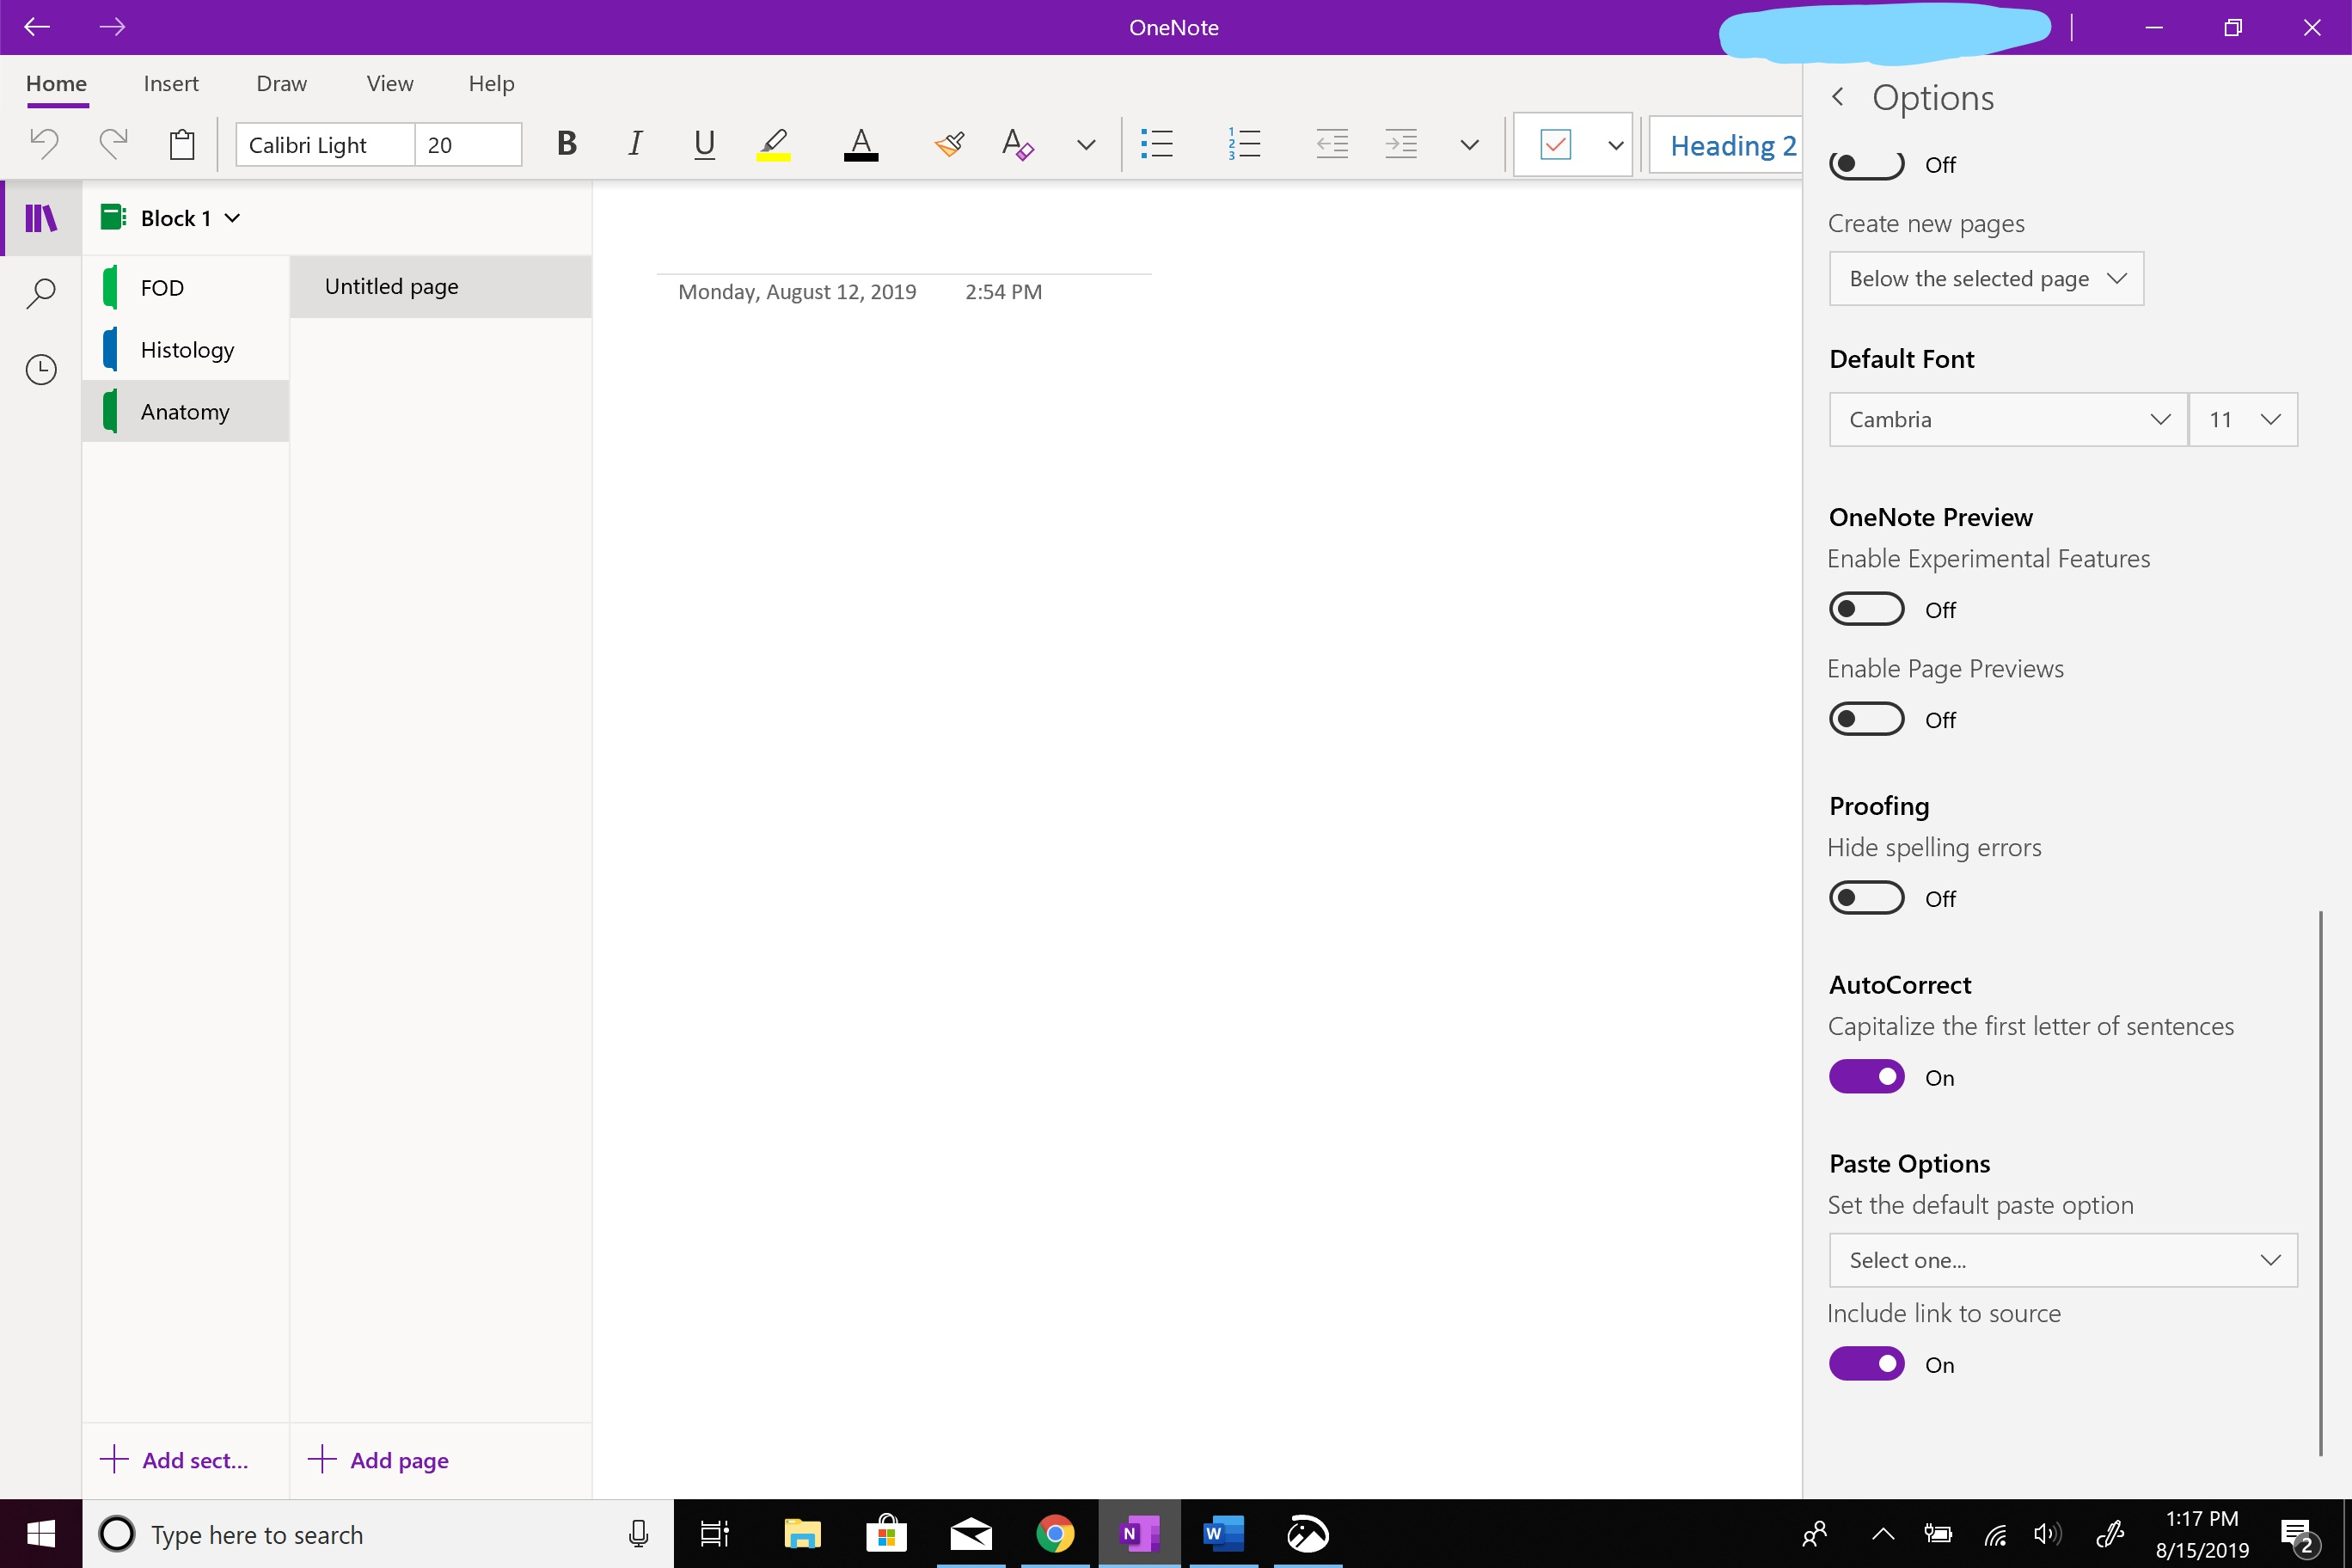 How do I change the default font color in OneNote for